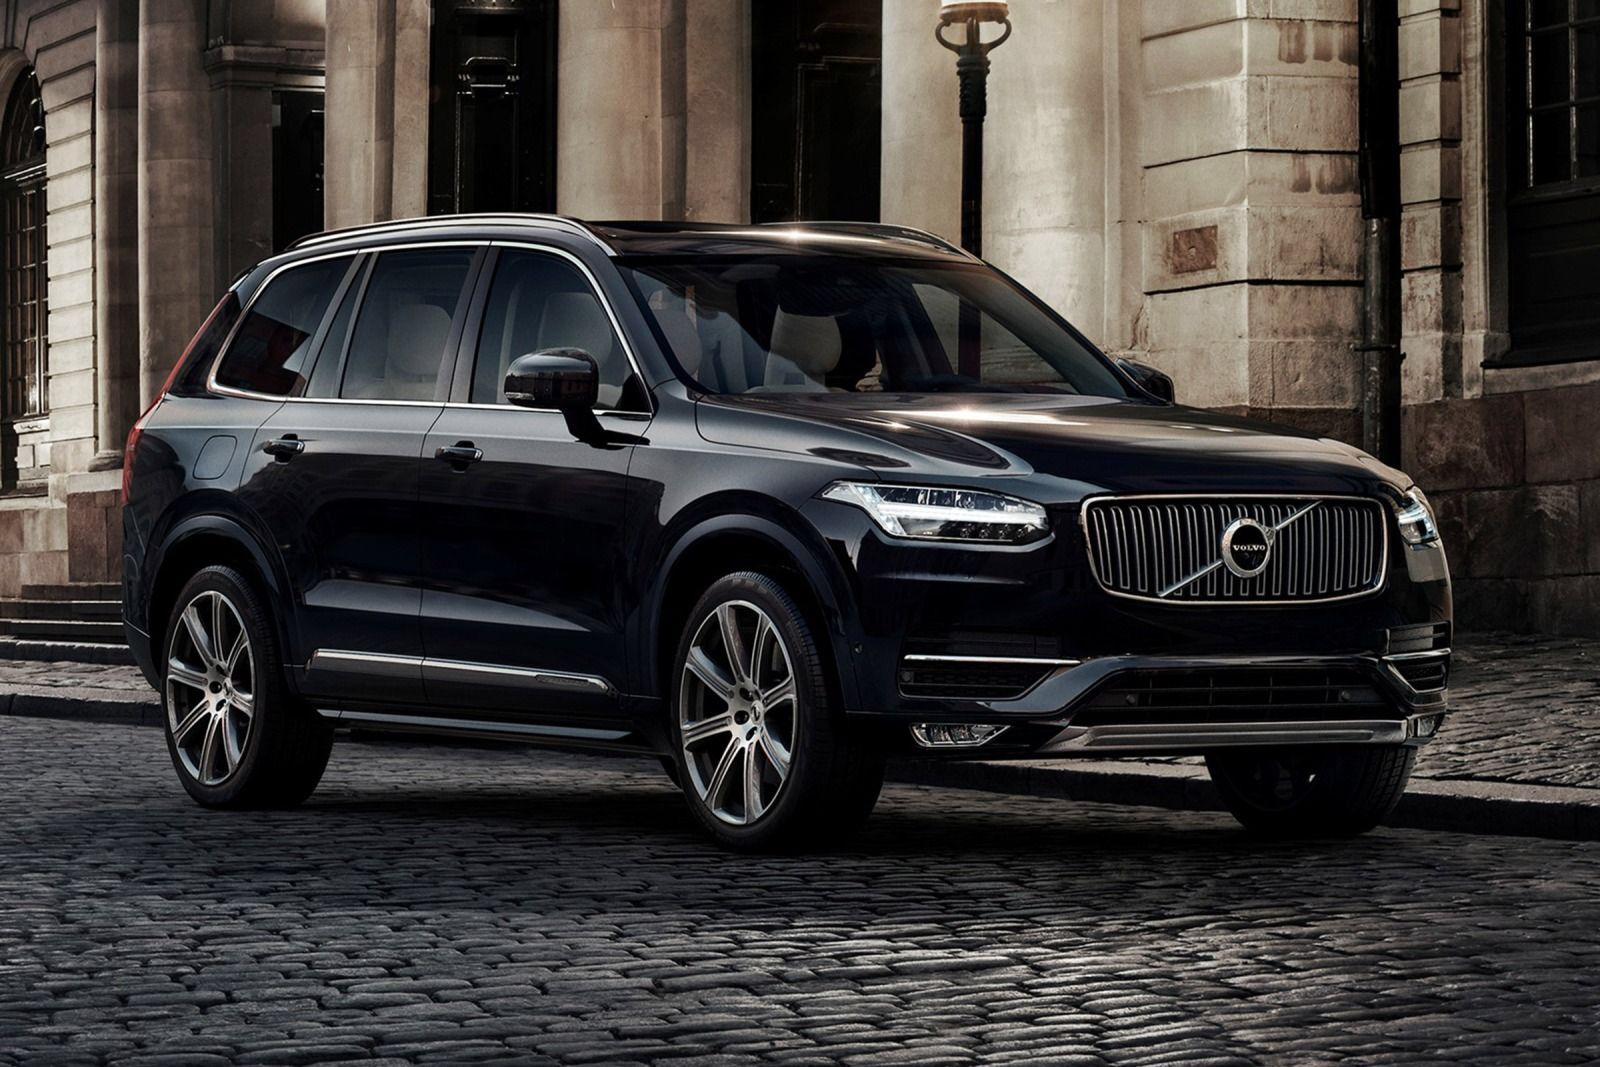 Pin By Cody Oxley On Automobiles Volvo Xc90 Volvo Cars Volvo Suv